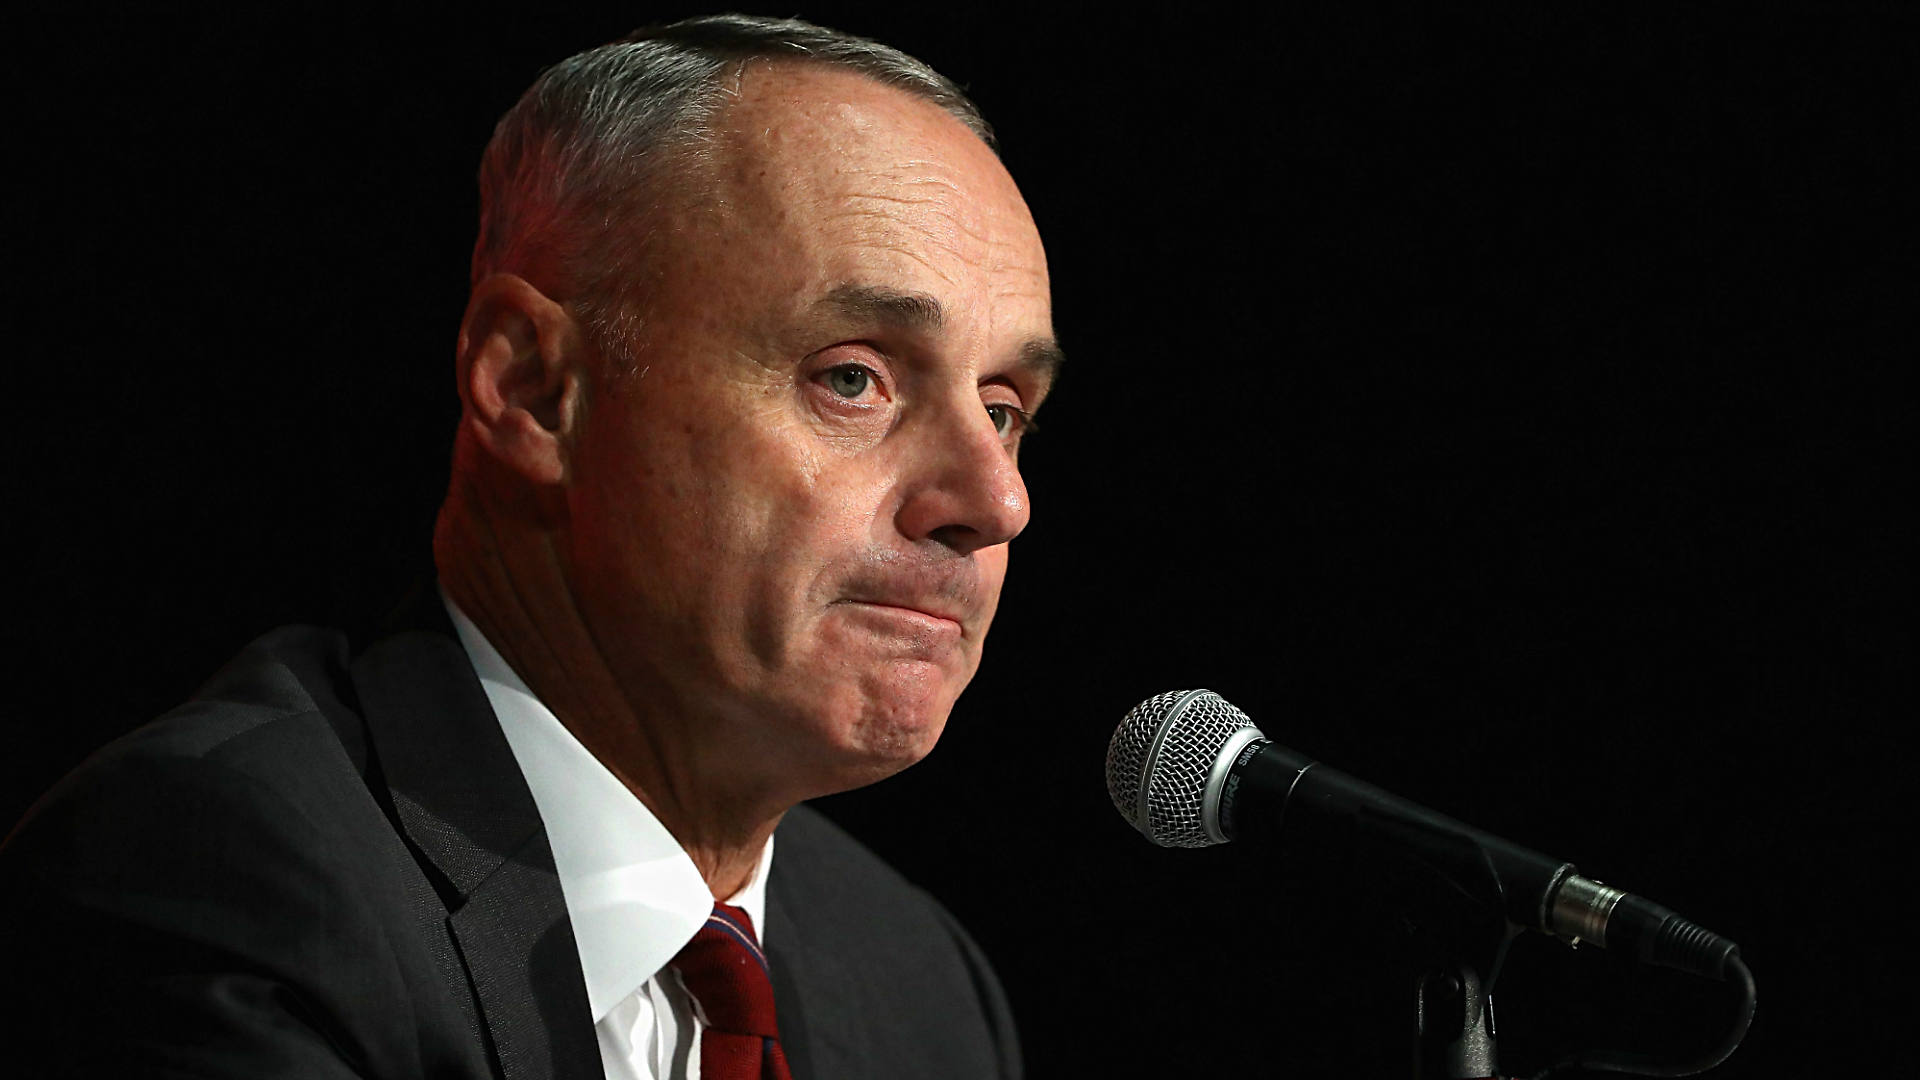 MLB coronavirus update: Rob Manfred's comments in response to Marlins outbreak not reassuring 1